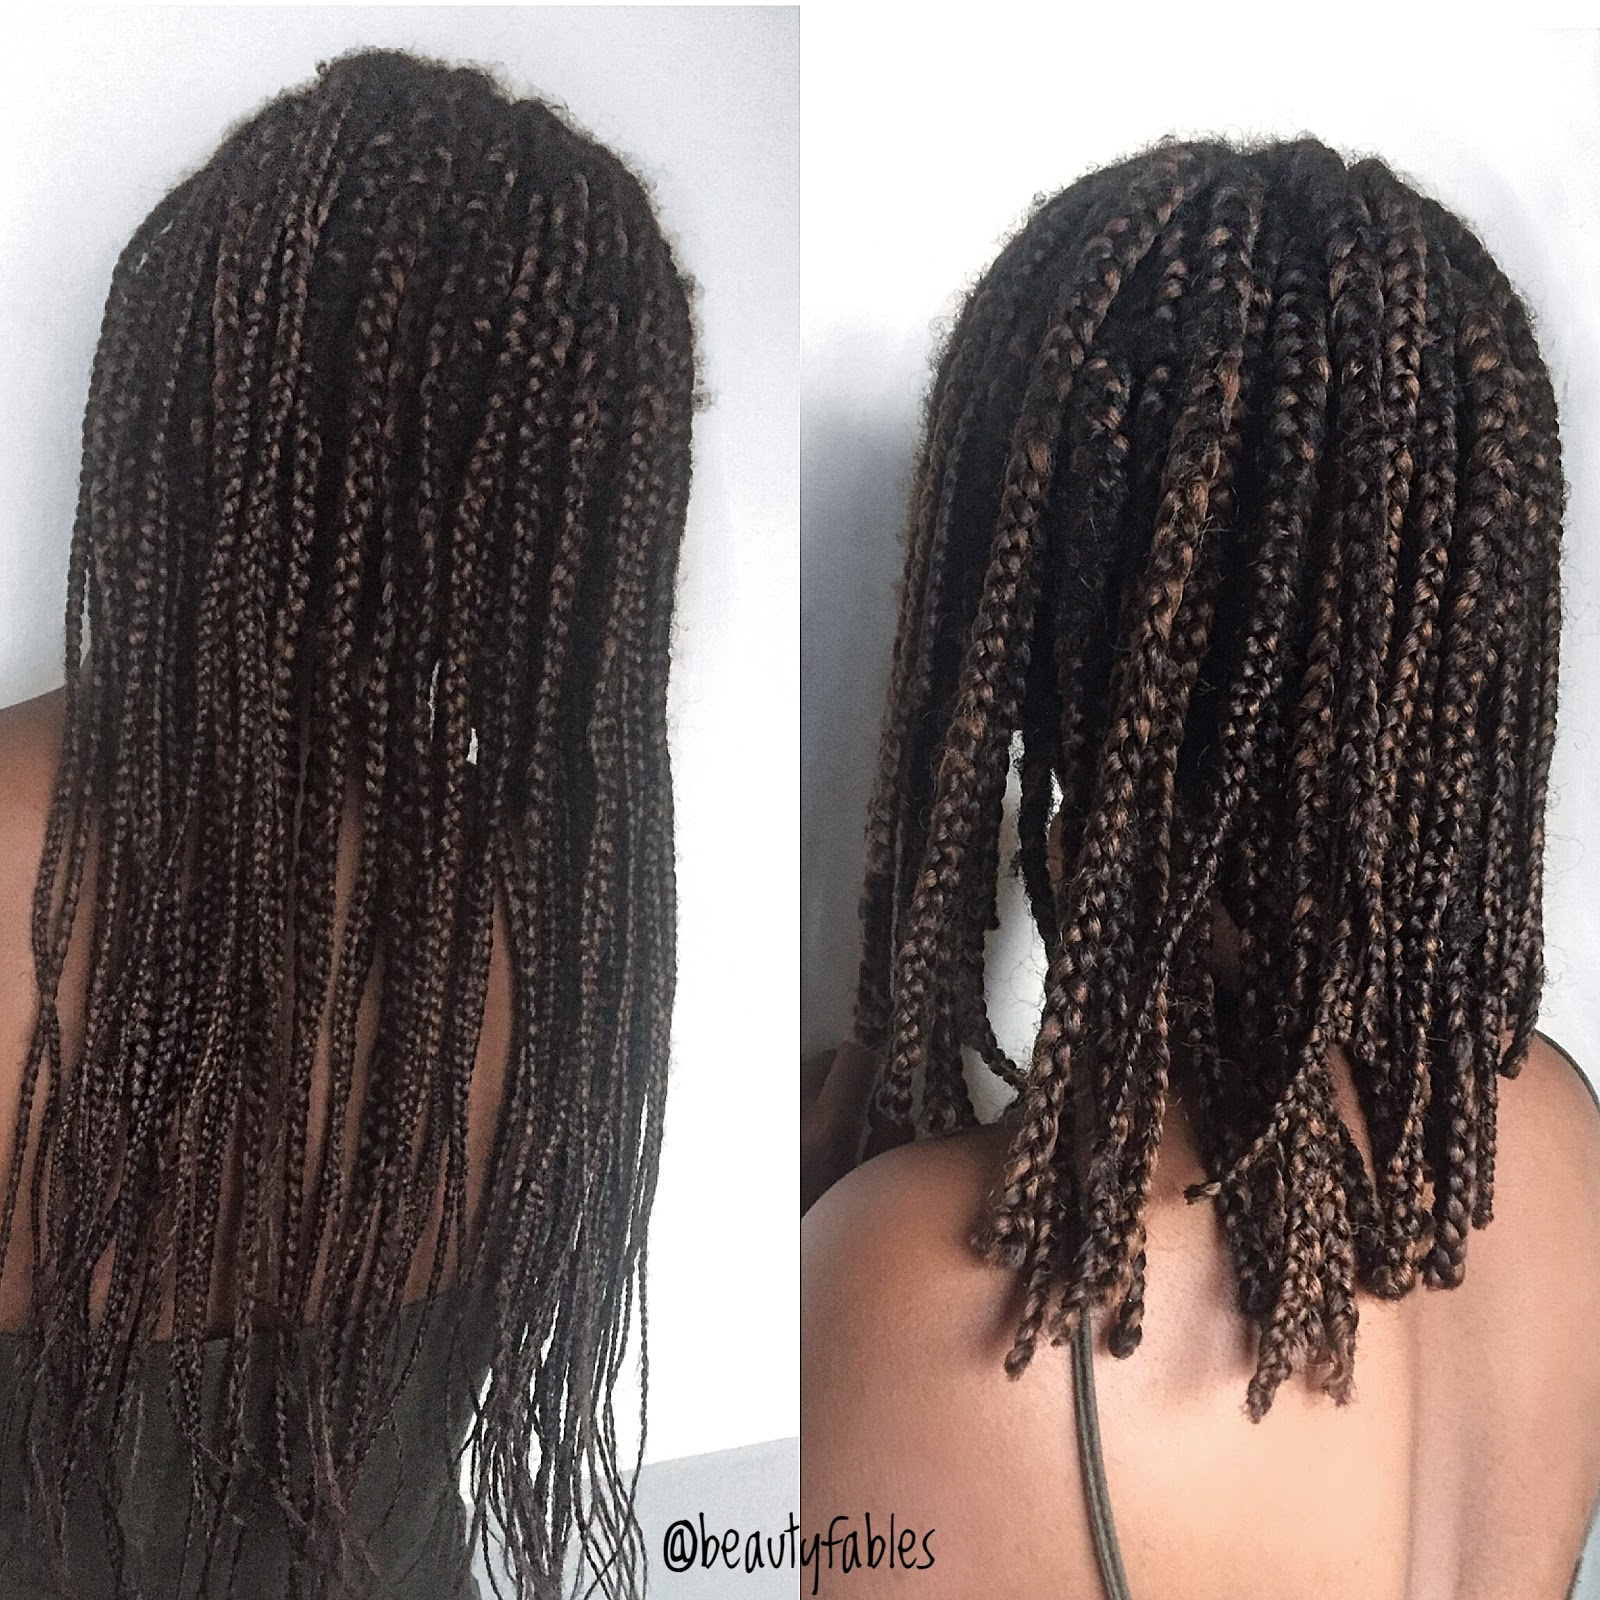 Hair Hack How To Get Rid Of Braids Dirt Knot For Painless Comb